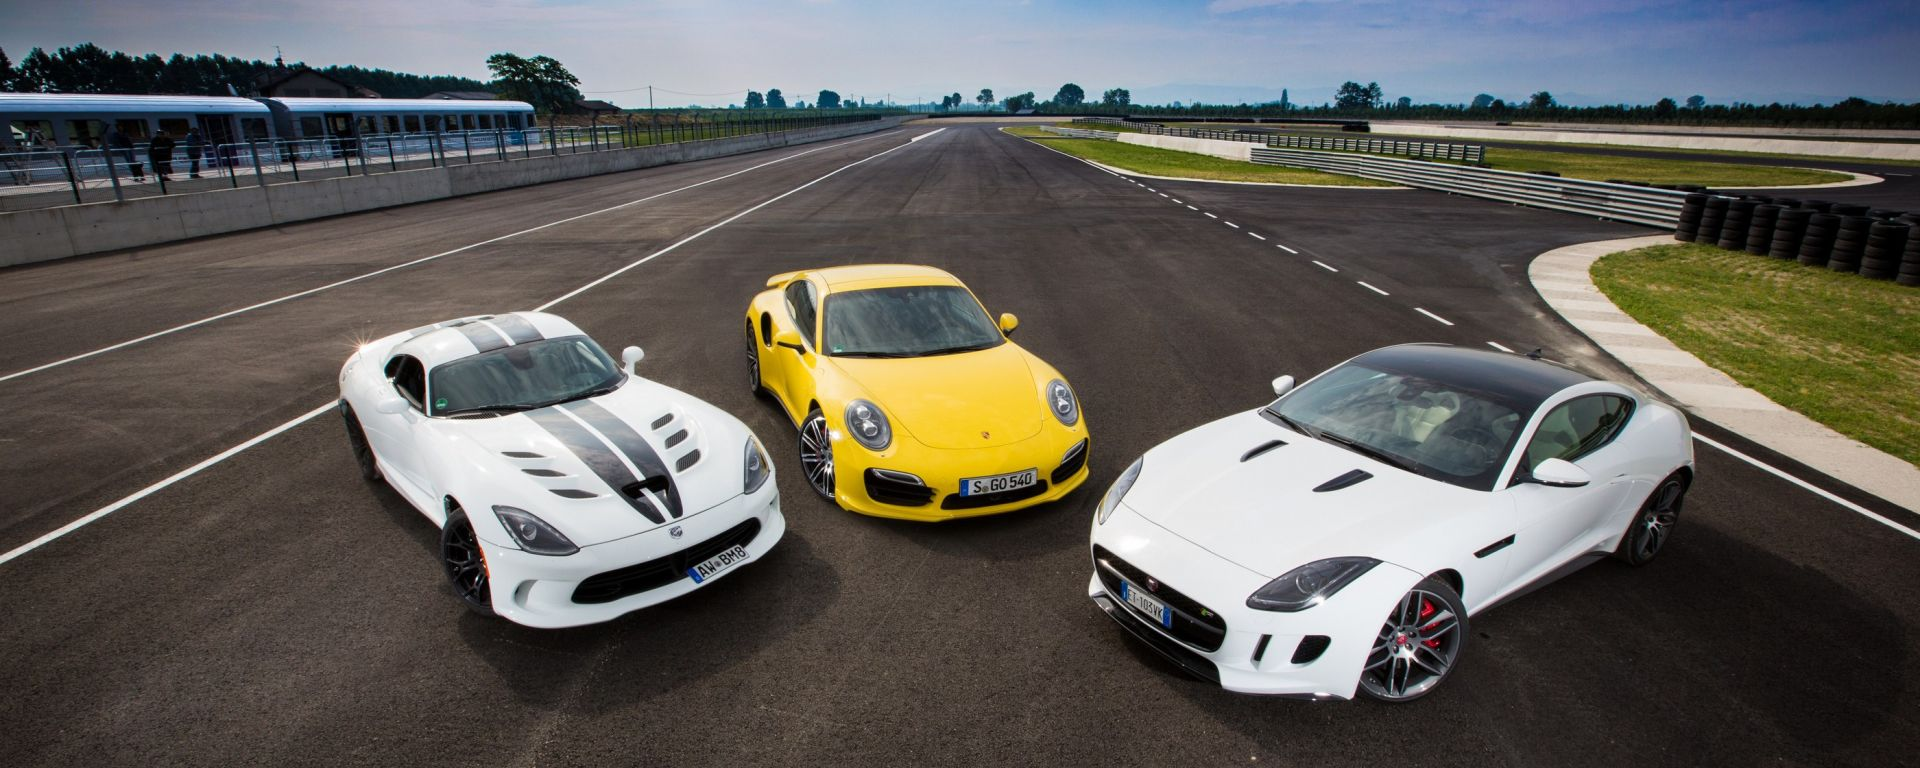 SRT Viper vs Porsche 911 Turbo vs Jaguar F-Type R